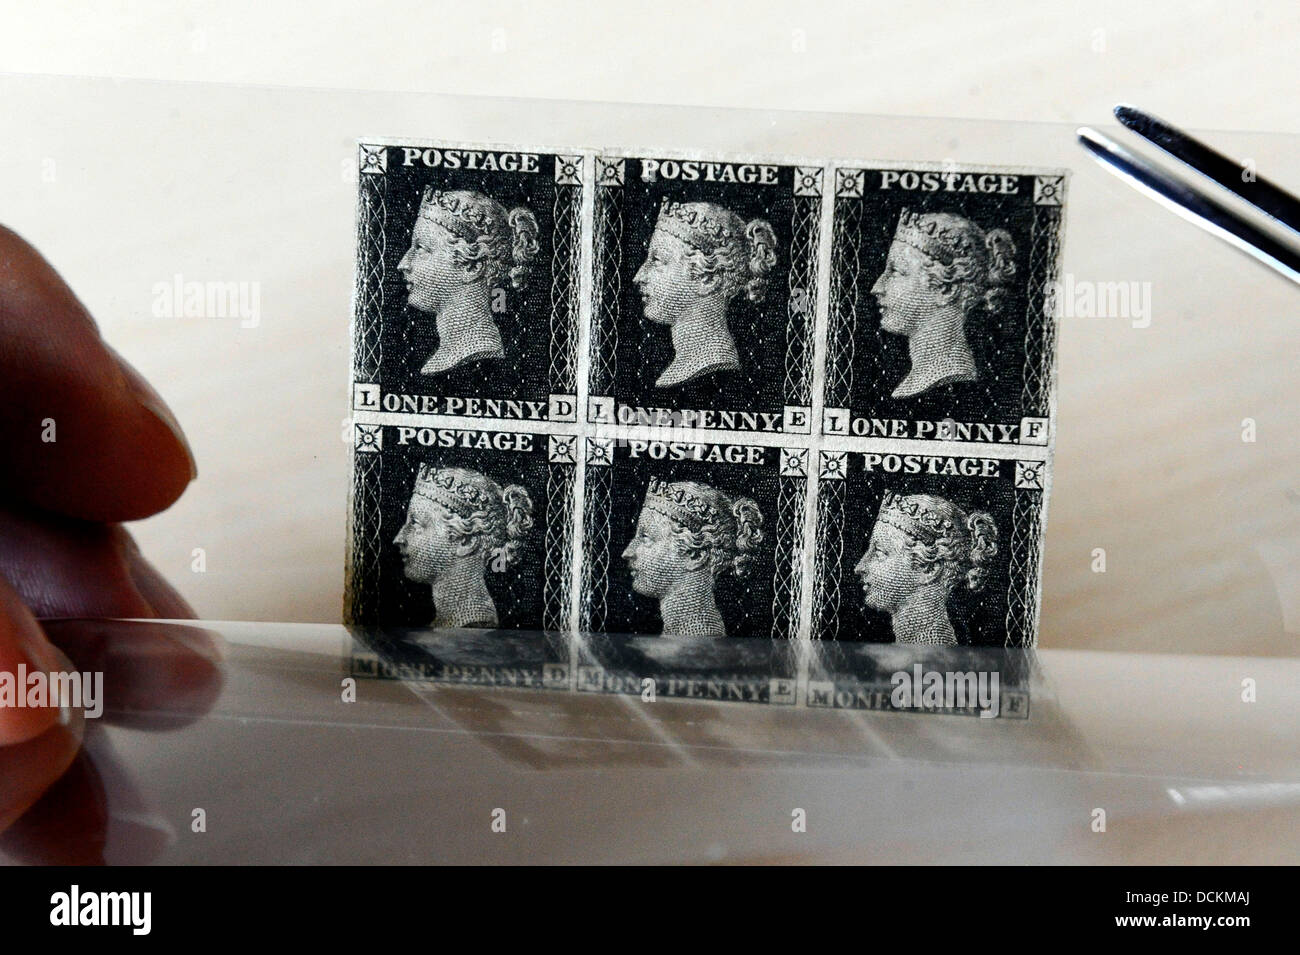 Brno, Czech Republic. 20th Aug, 2013. Penny Black stamps, world's first adhesive postage stamps is seen at the - Stock Image